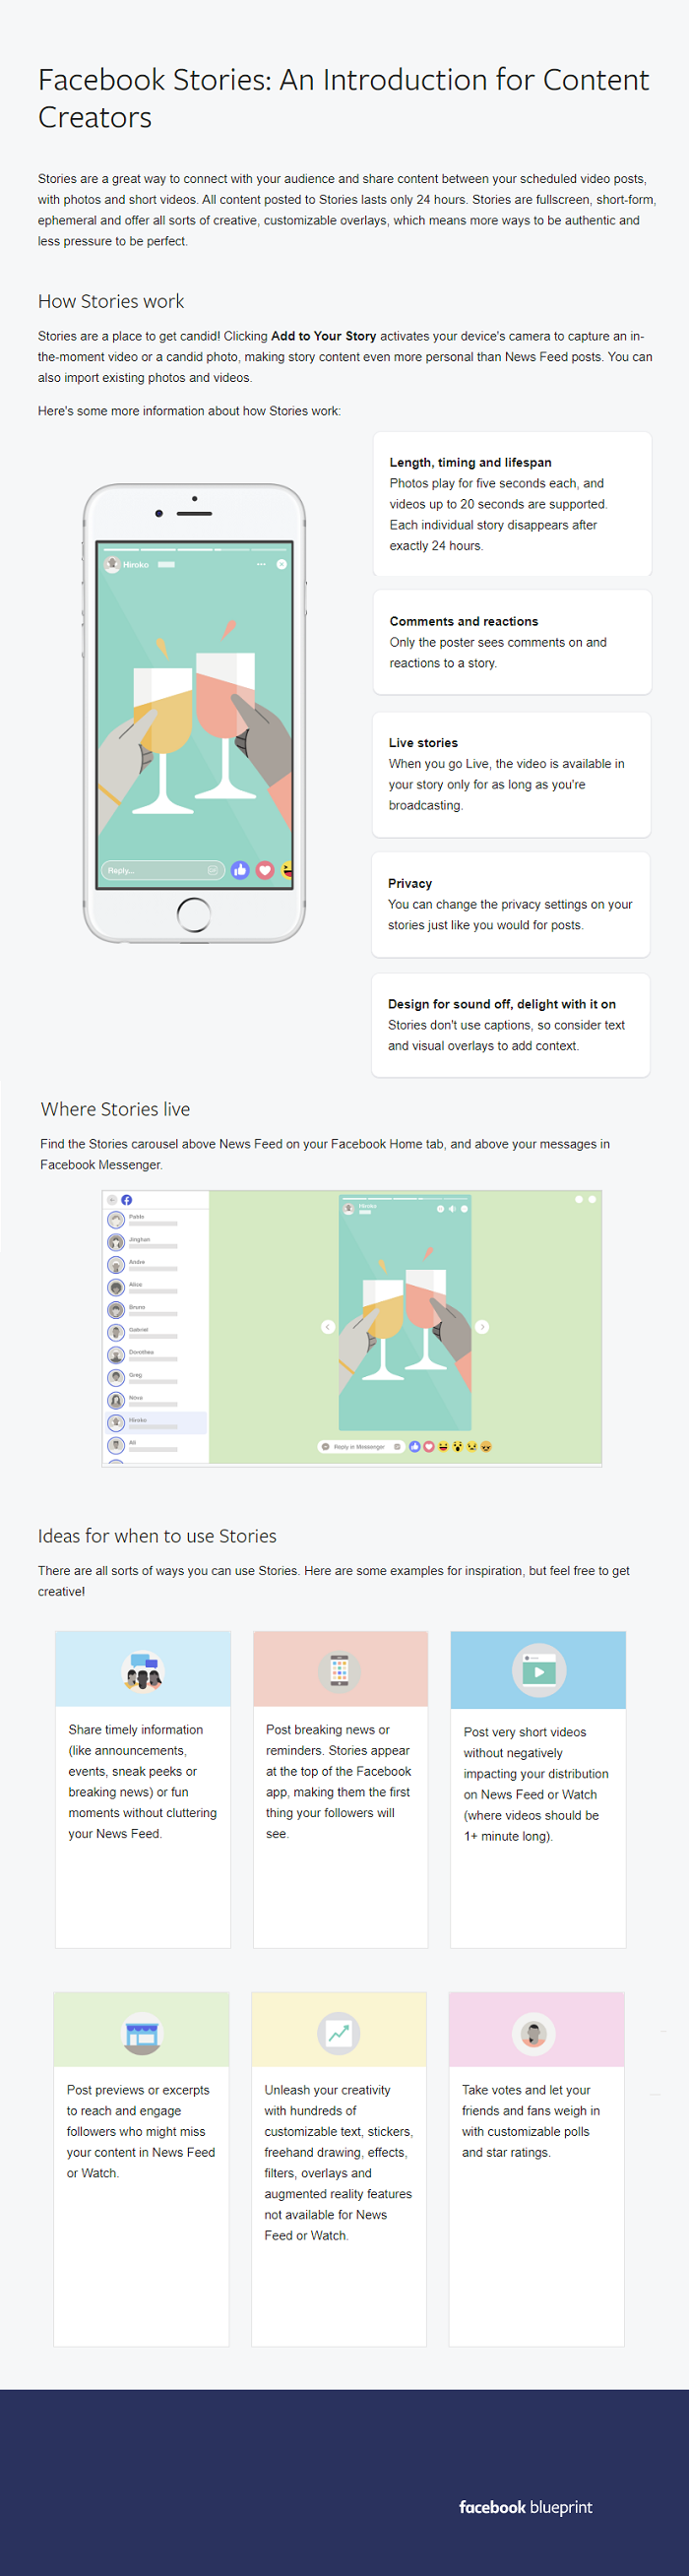 Facebook Stories: An Introduction for Content Creators [Infographic]                      | Social Media Today